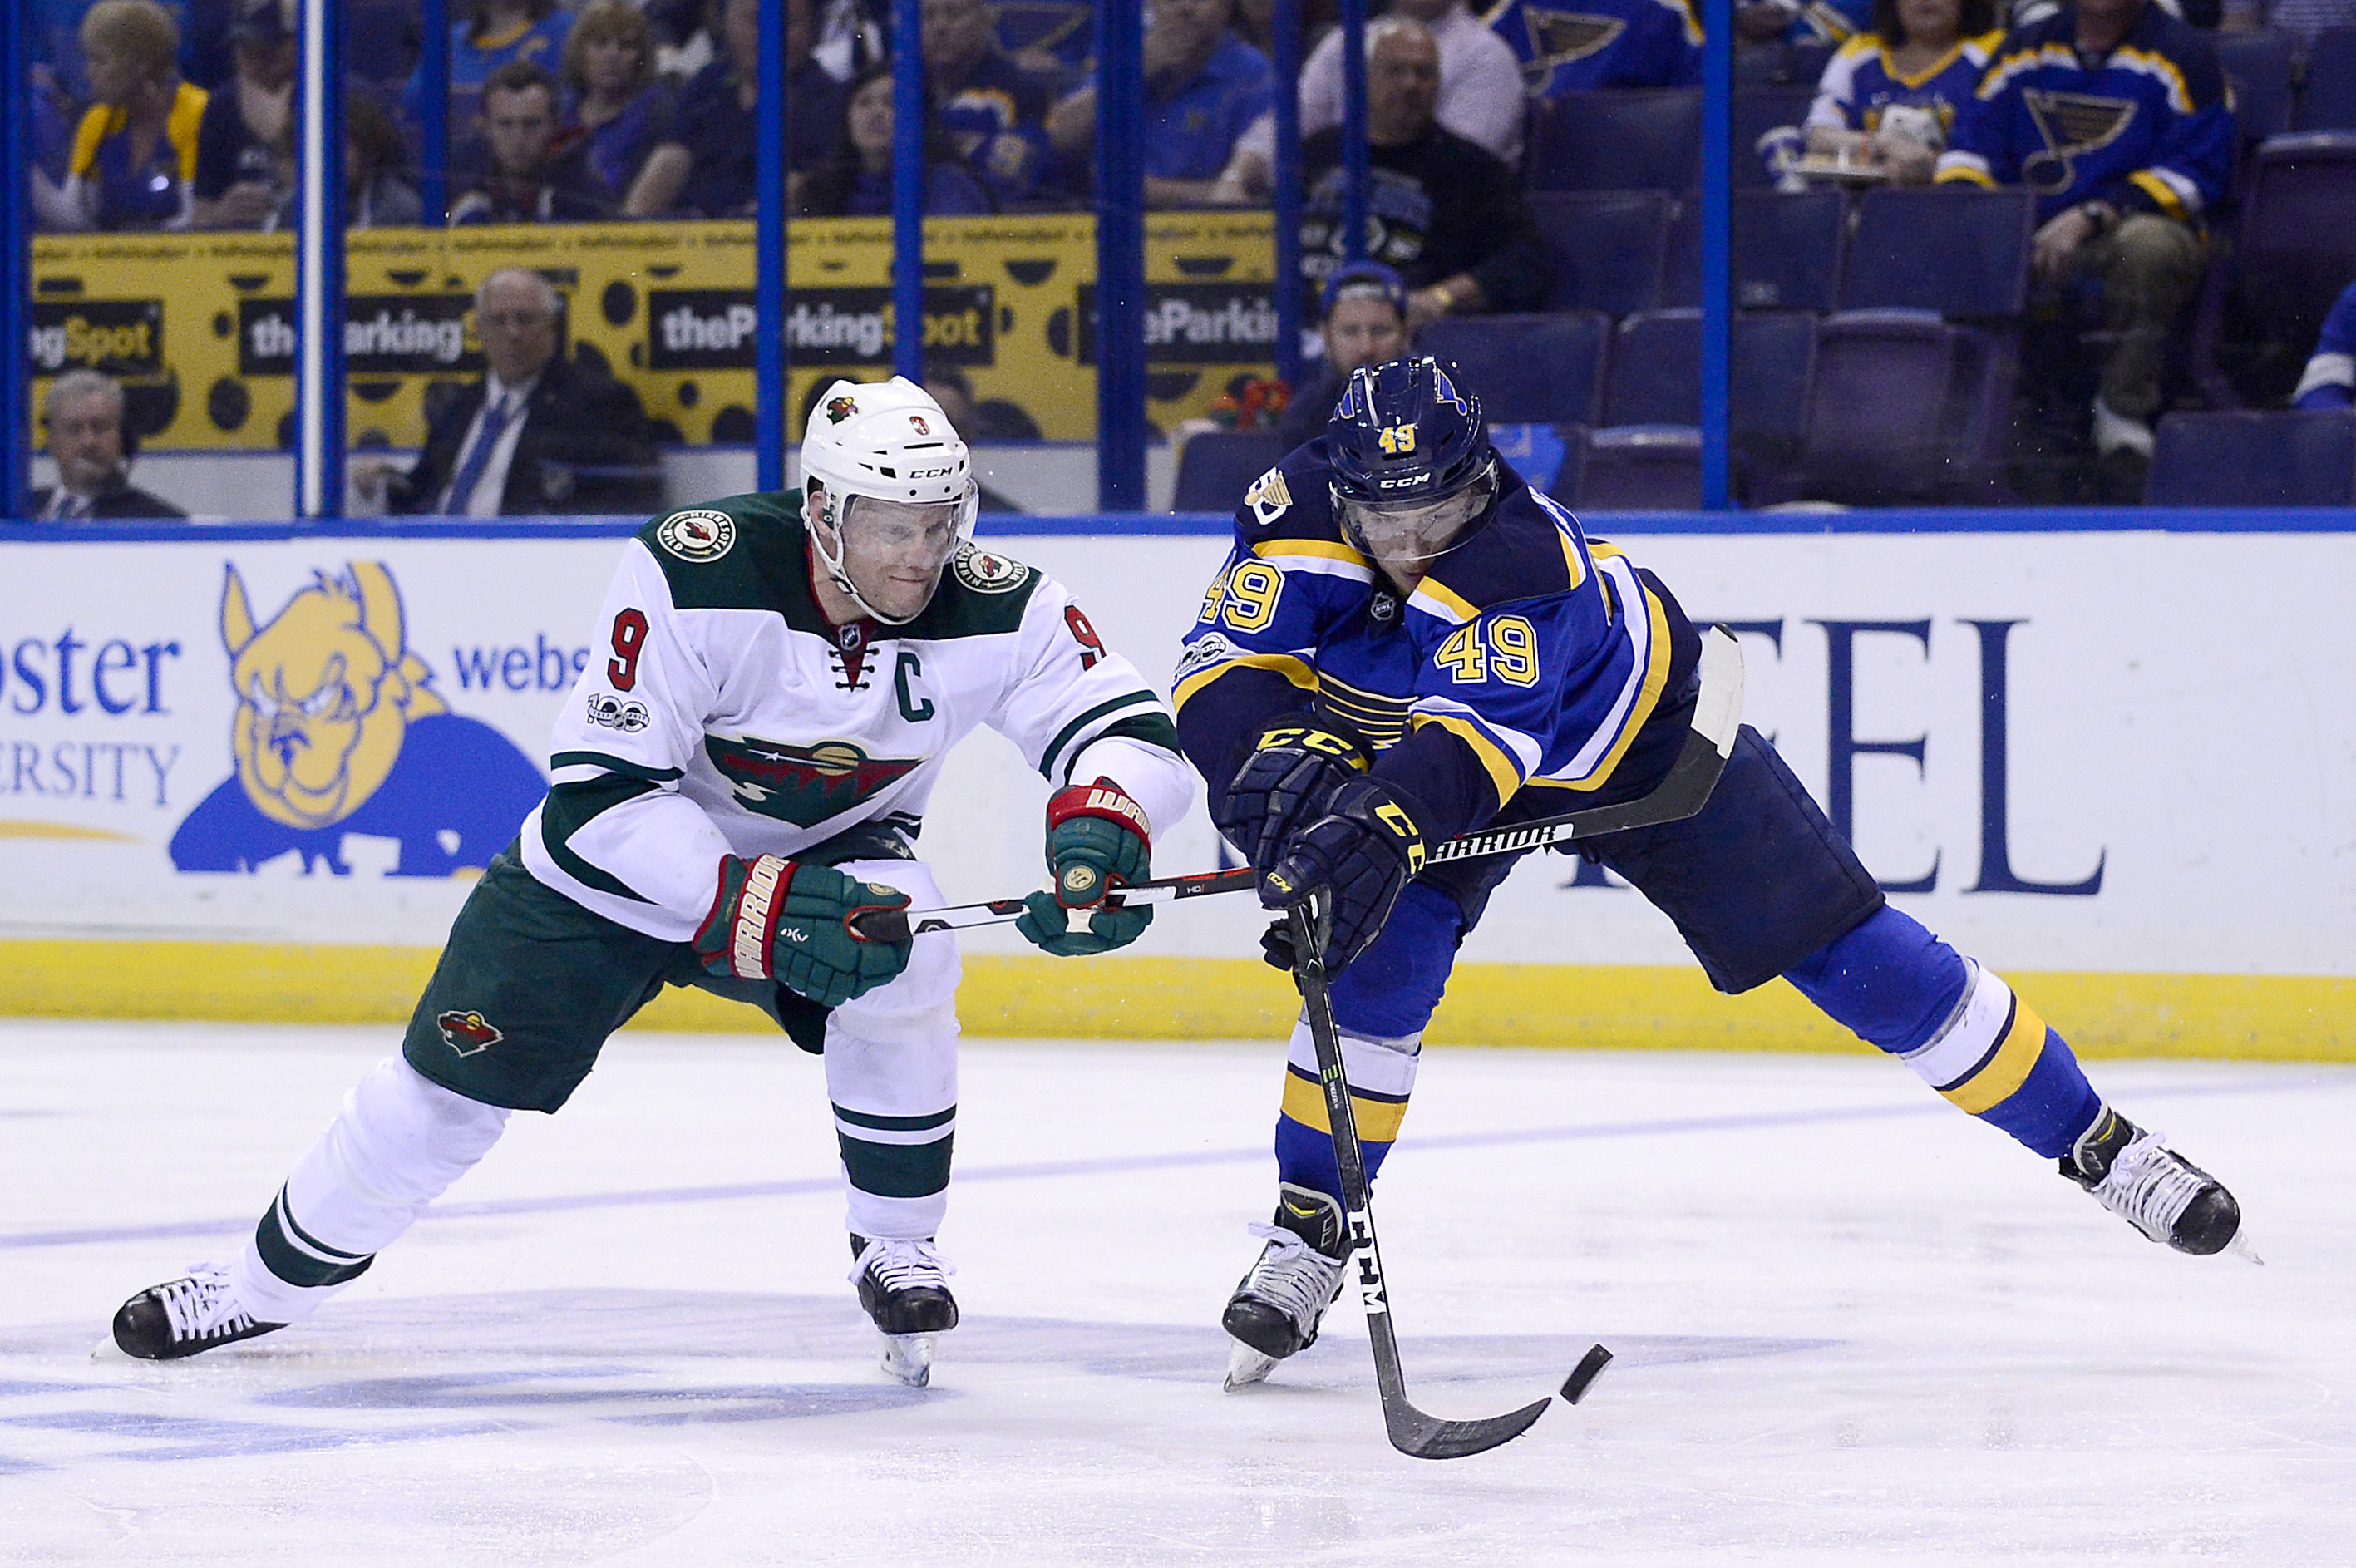 10016276-nhl-stanley-cup-playoffs-minnesota-wild-at-st.-louis-blues